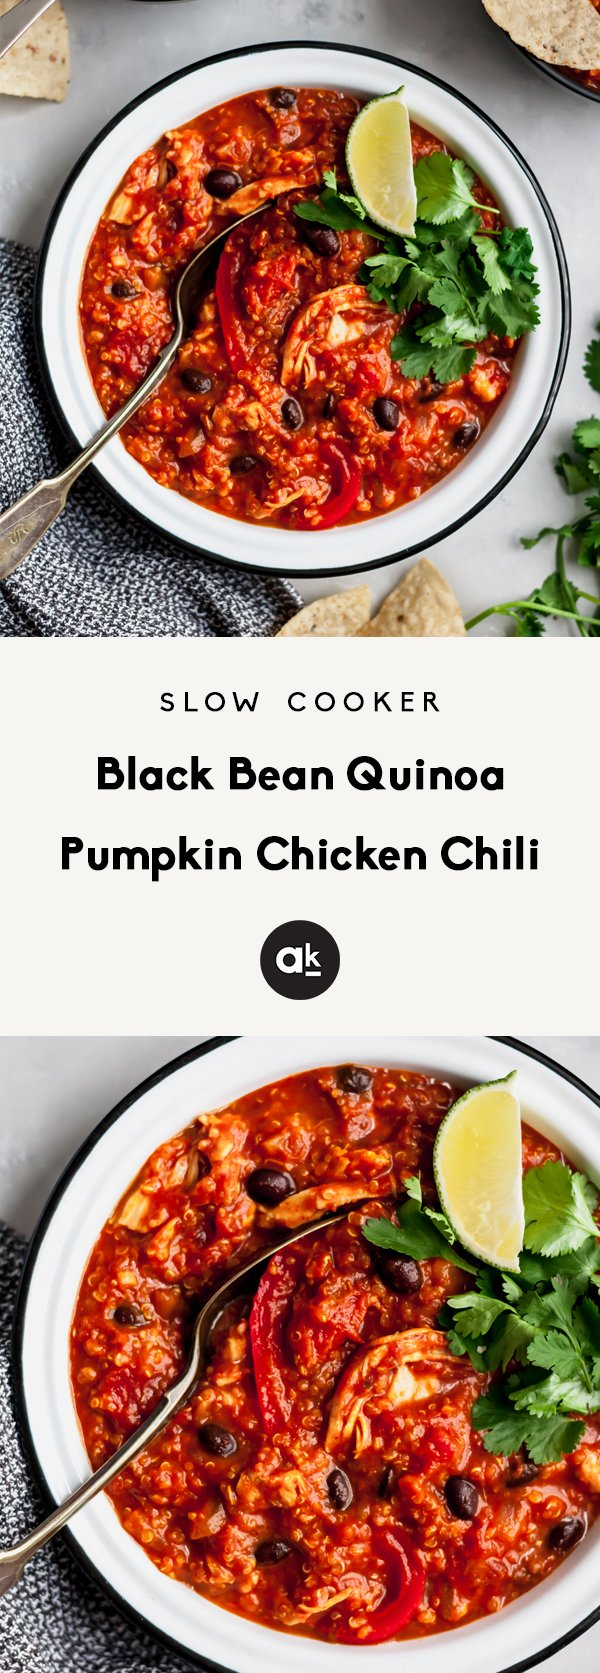 Delicious pumpkin chicken chili with black beans and quinoa! This protein packed delicious gluten free dinner can be made in your slow cooker for an easy, hearty dinner. Perfect paired with a side of cornbread.